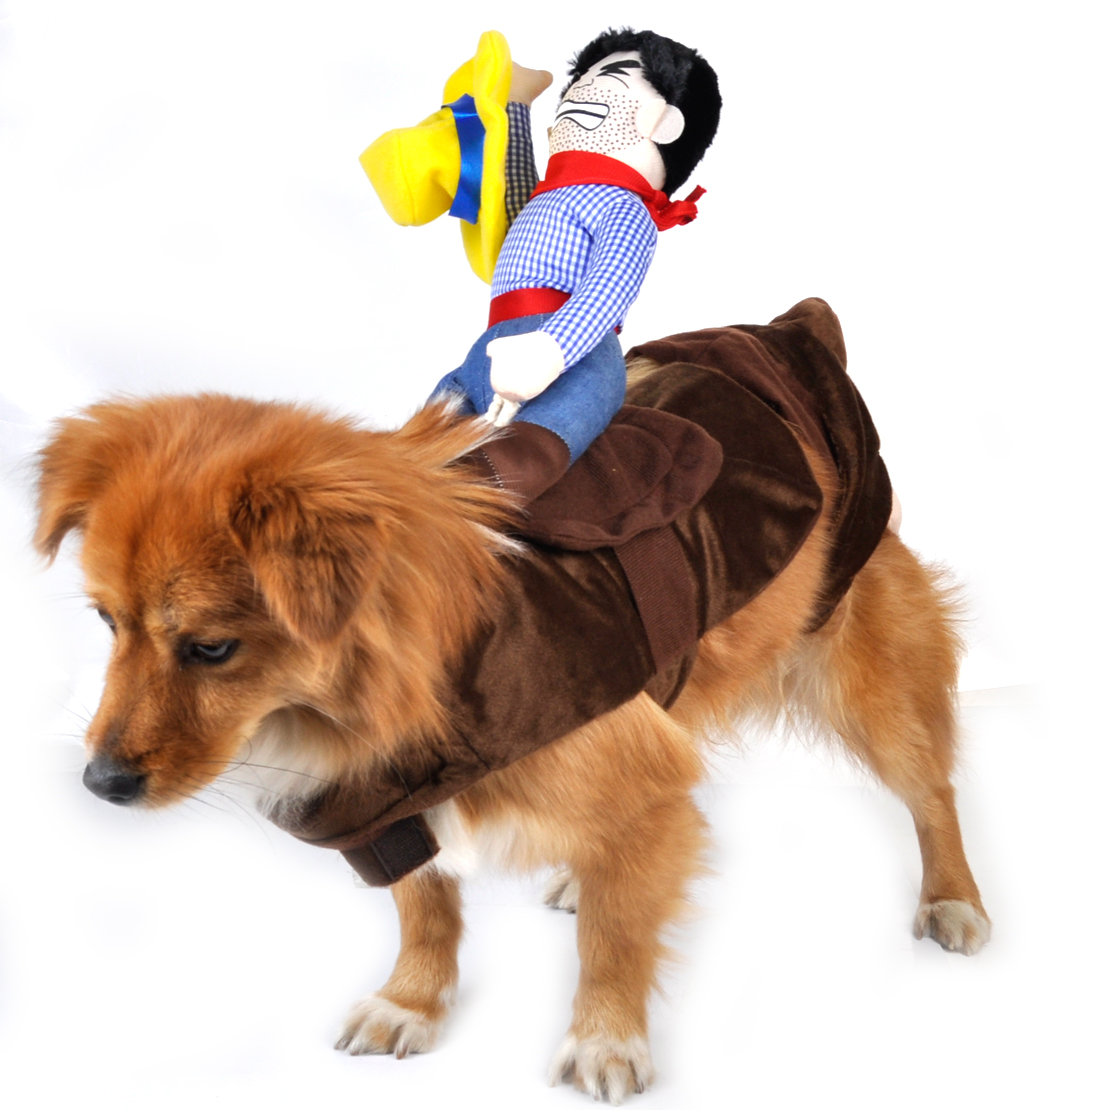 Pet Dog Rider Costume Cowboy Knight Puppy Cat Coat Rider